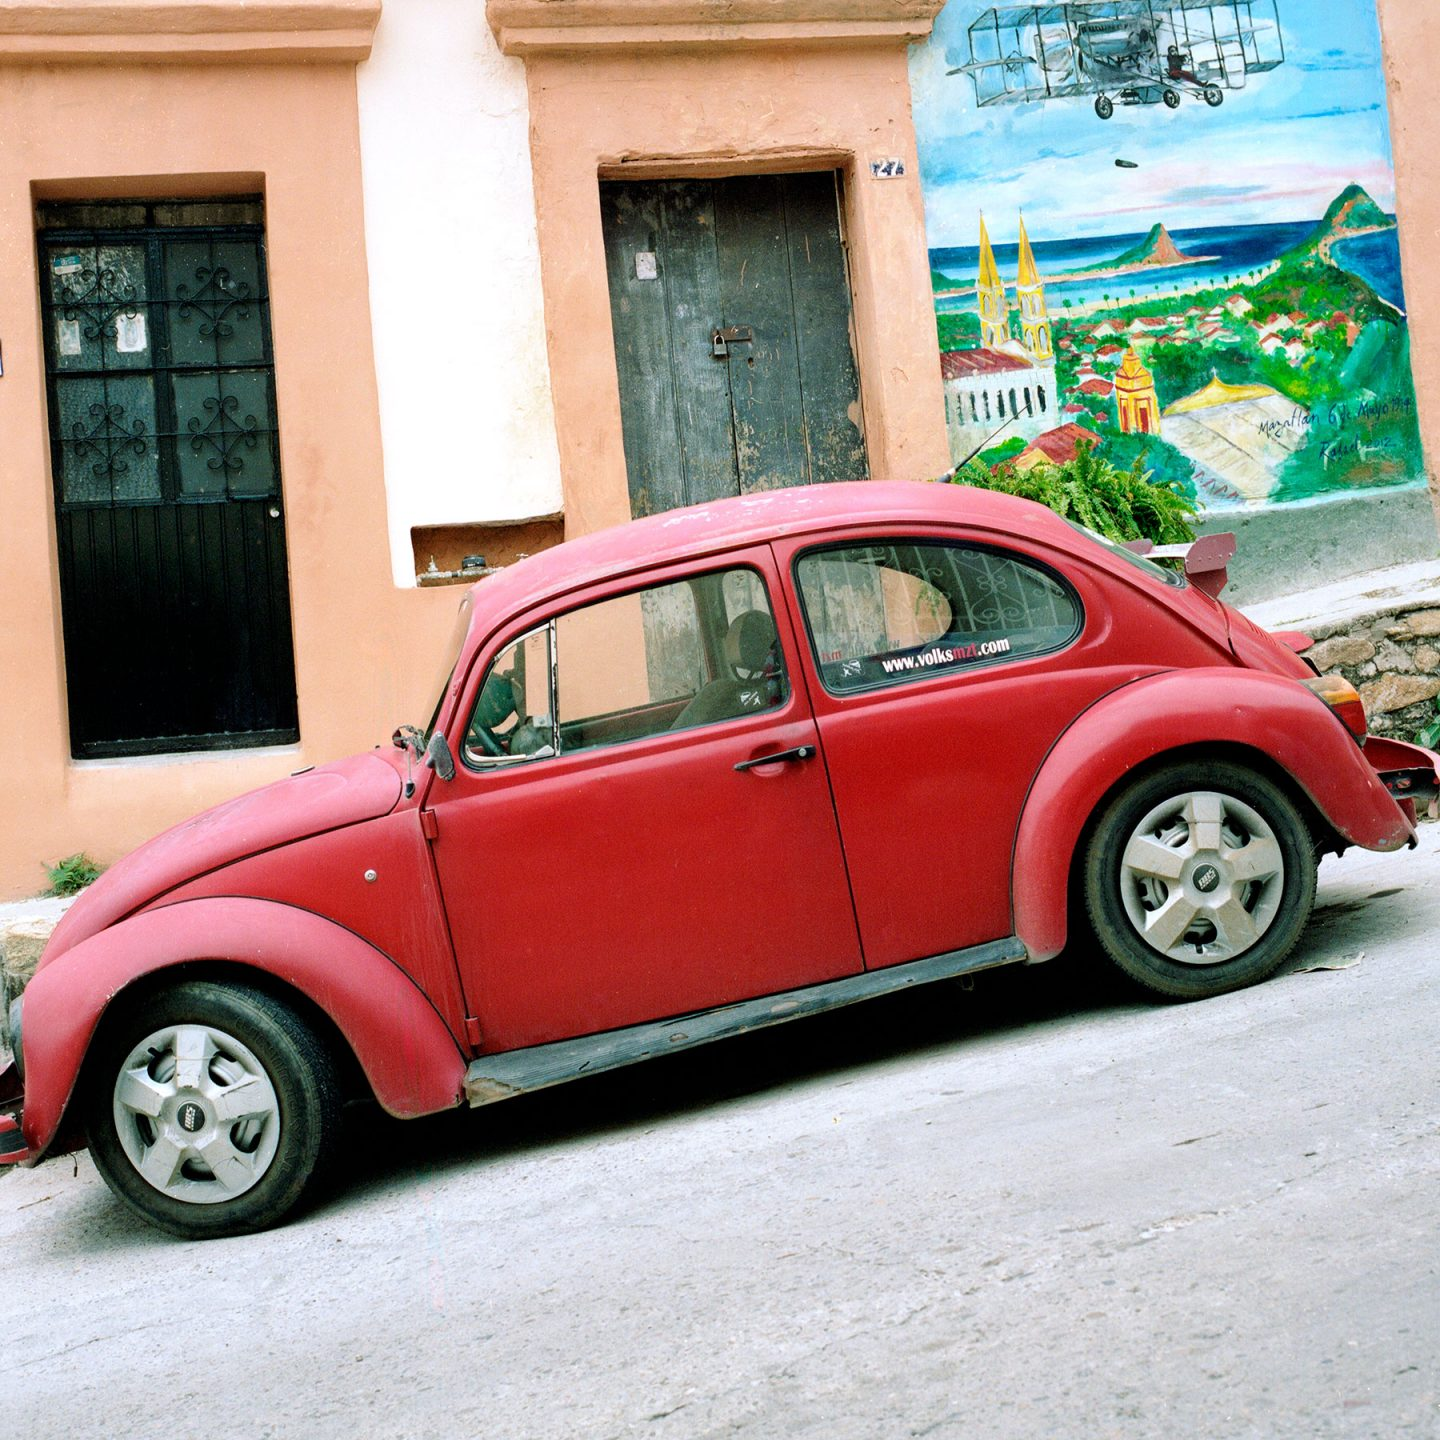 Cars of Mazatlan Mexico – Hasselblad 500cm